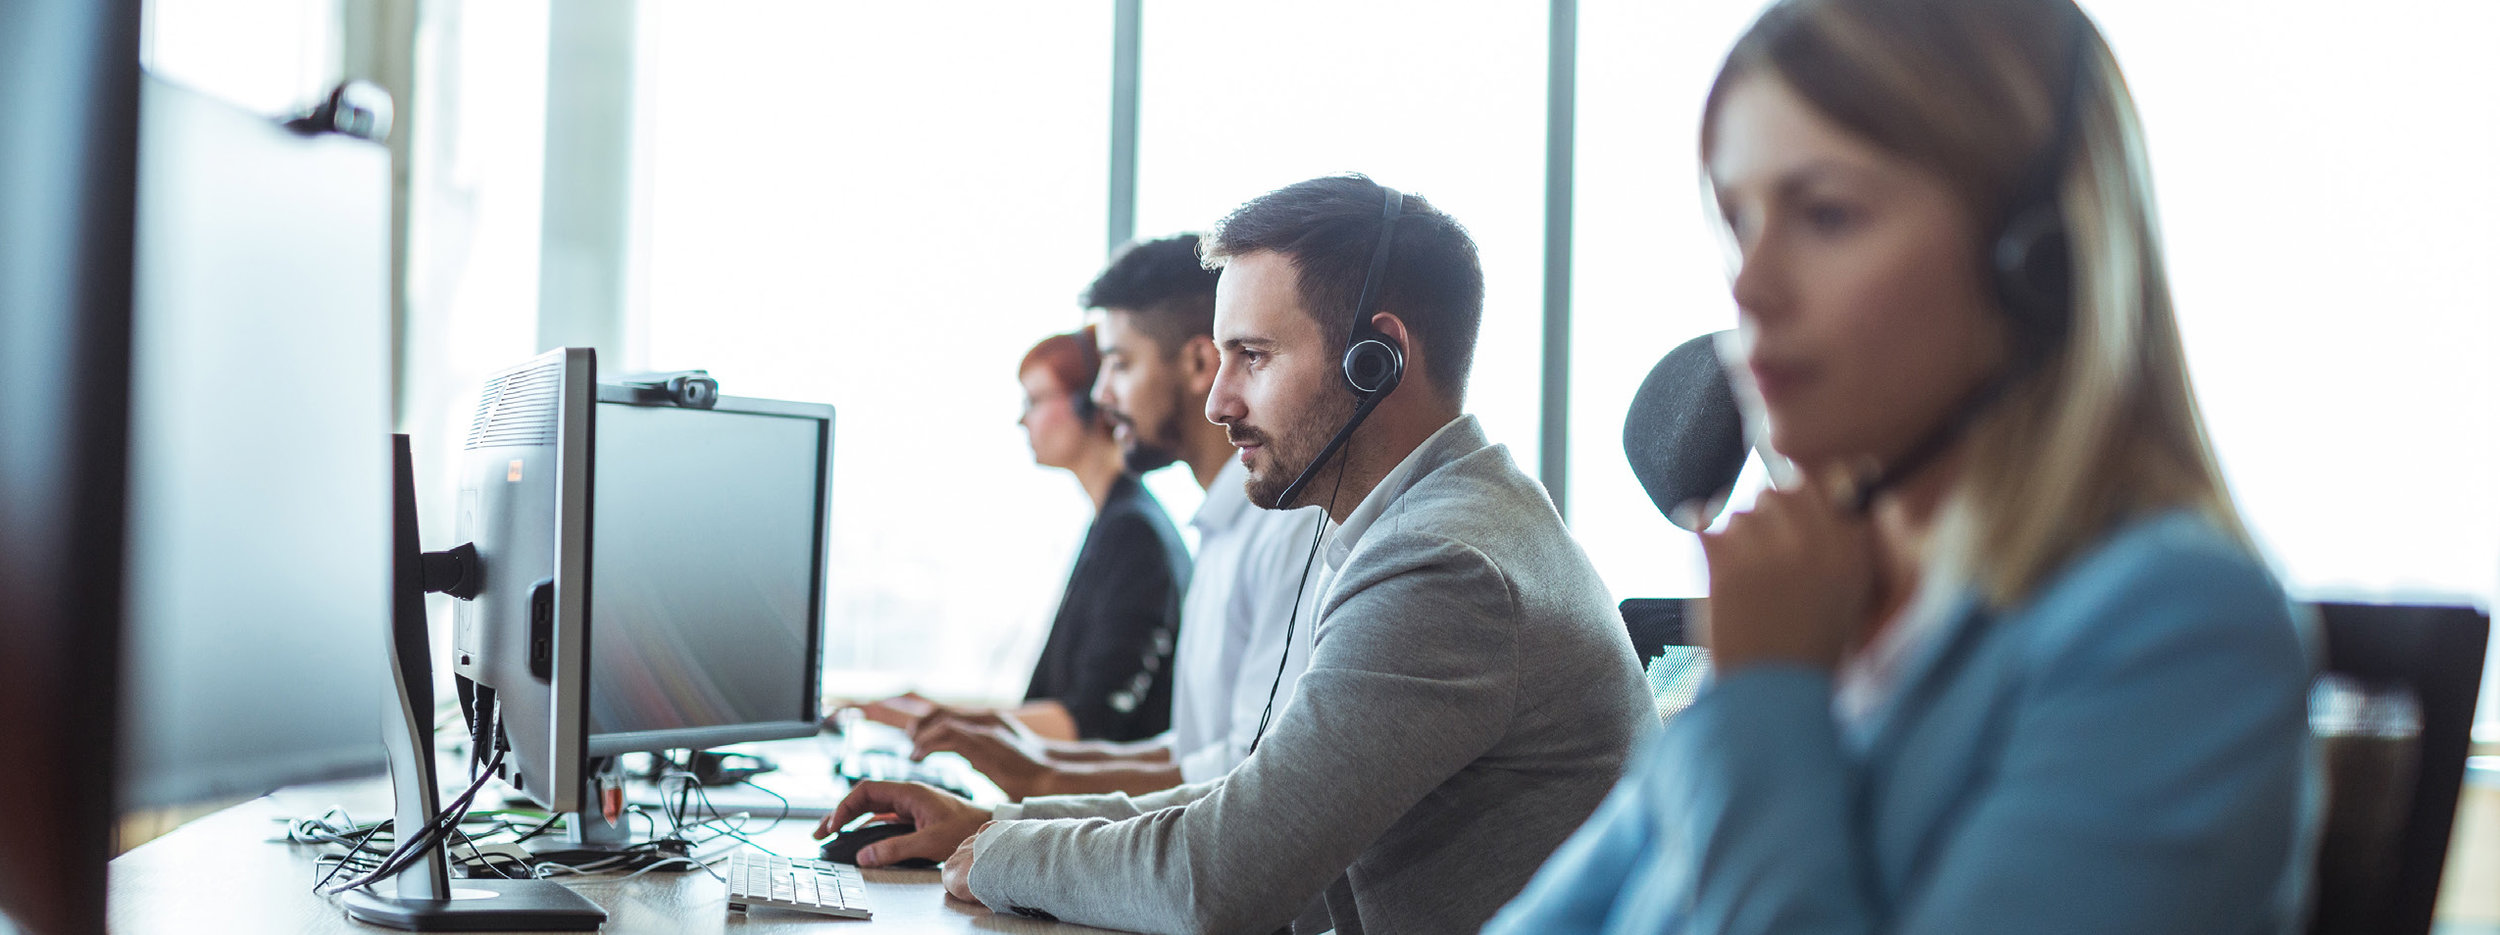 Mitel-Connect-ContactCenter-QuickView-1.jpg